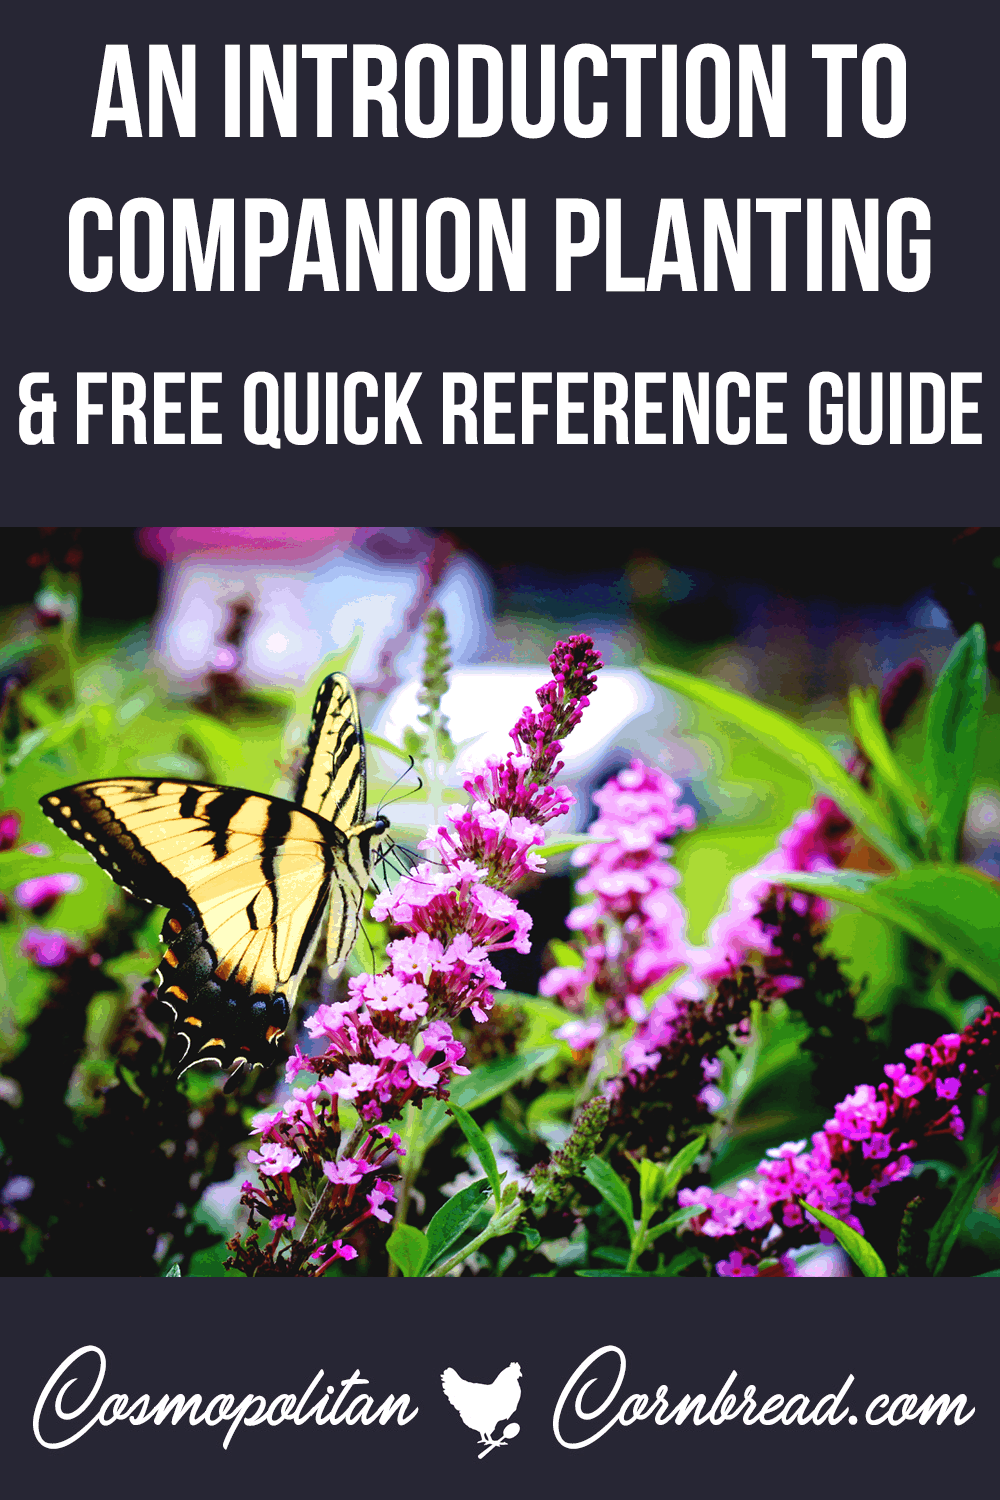 An Introduction to Companion Planting - with FREE Quick Reference Chart from Cosmopolitan Cornbread